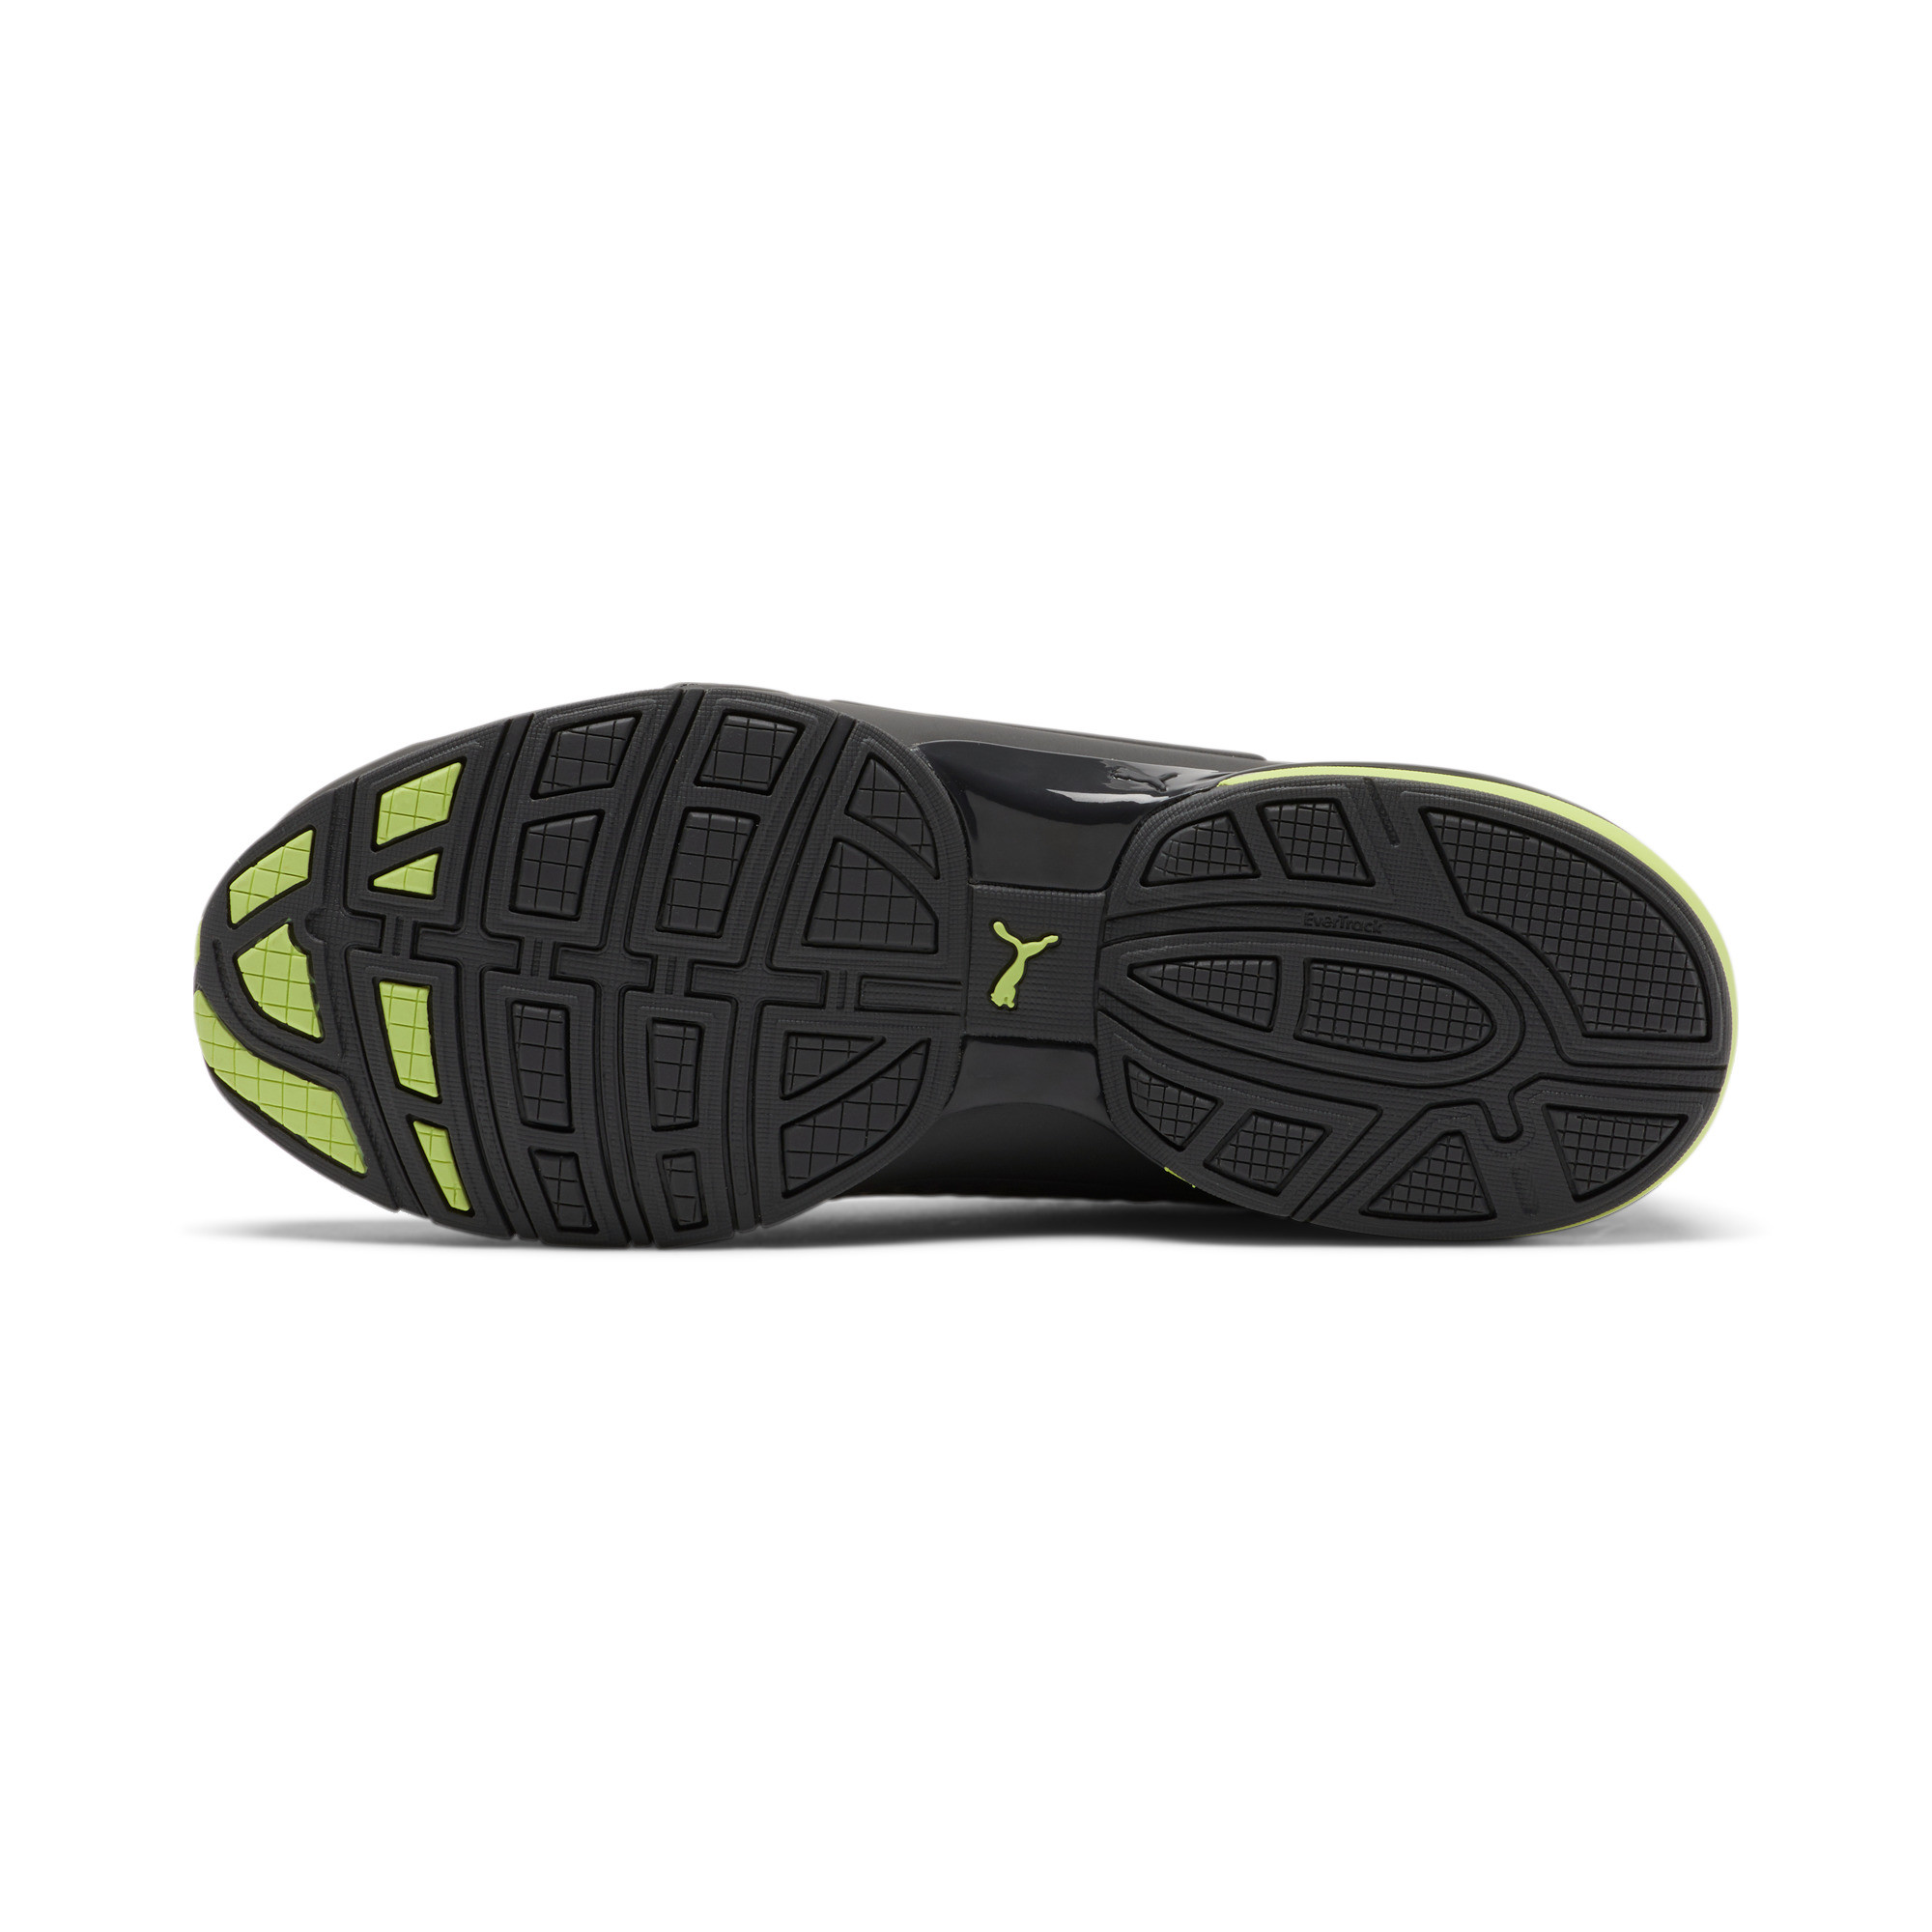 PUMA-Men-039-s-Viz-Runner-Graphic-Sneakers thumbnail 23